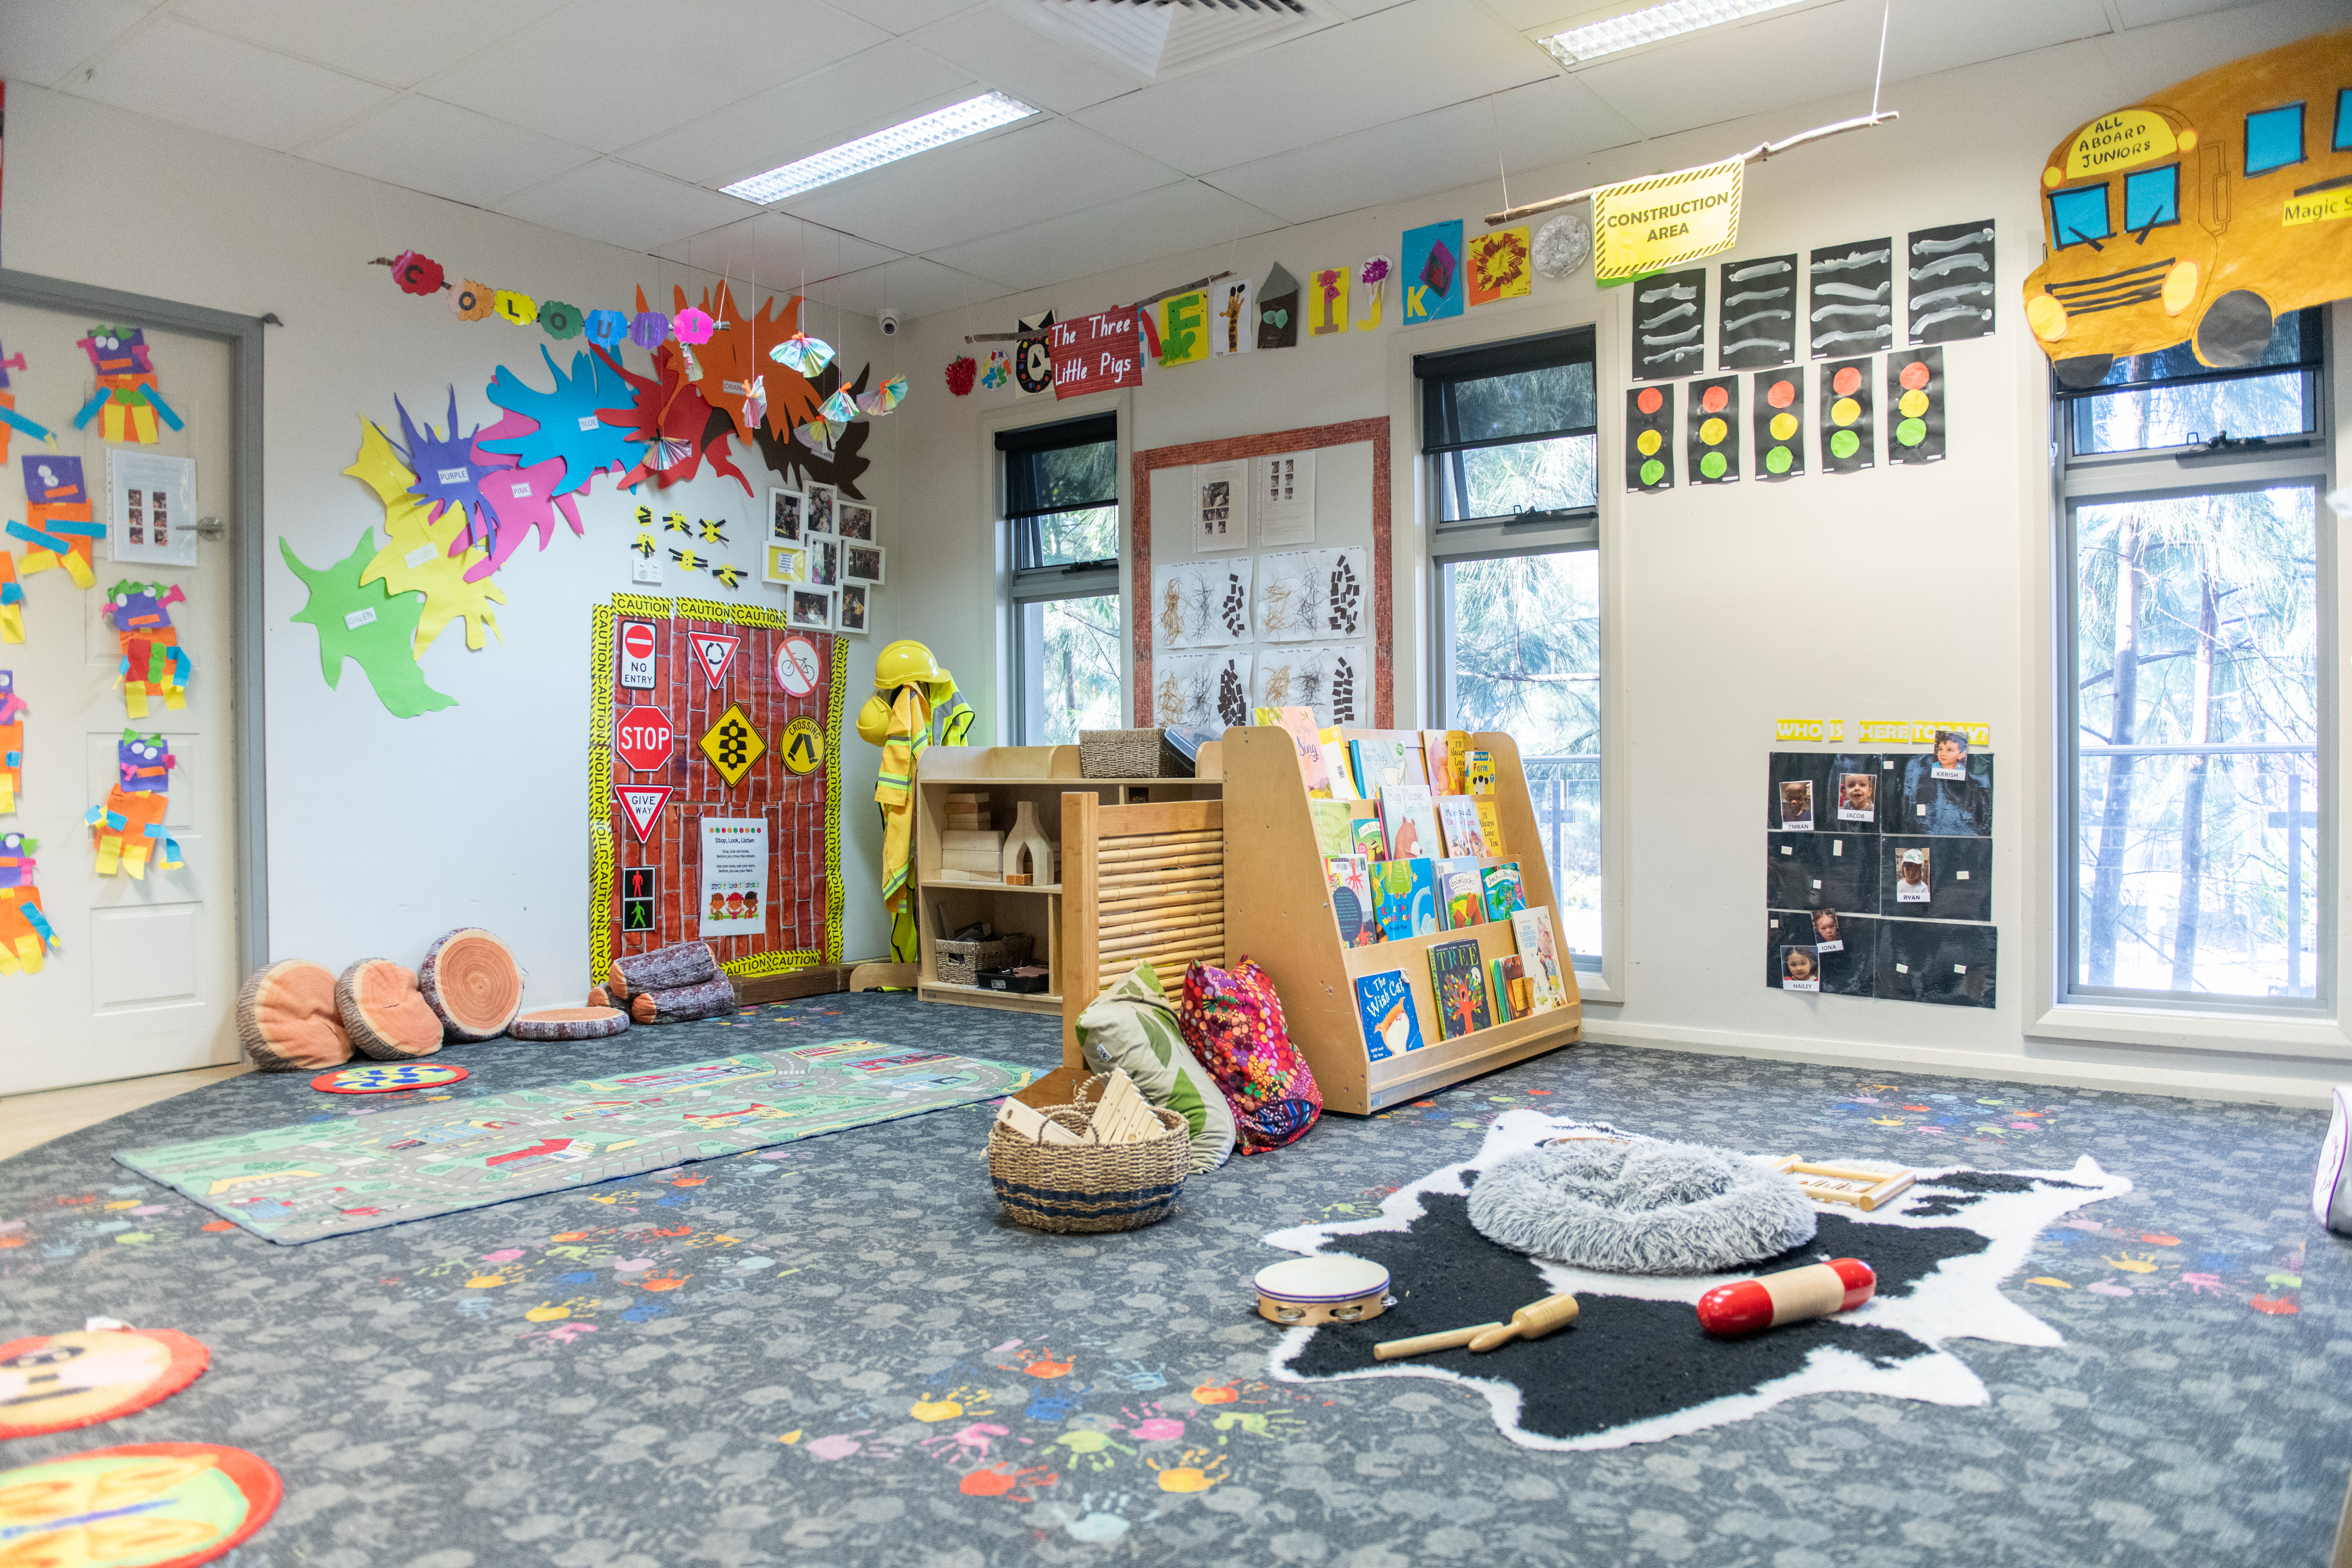 Child care educator with group of children in preschool classroom at Papilio Epping